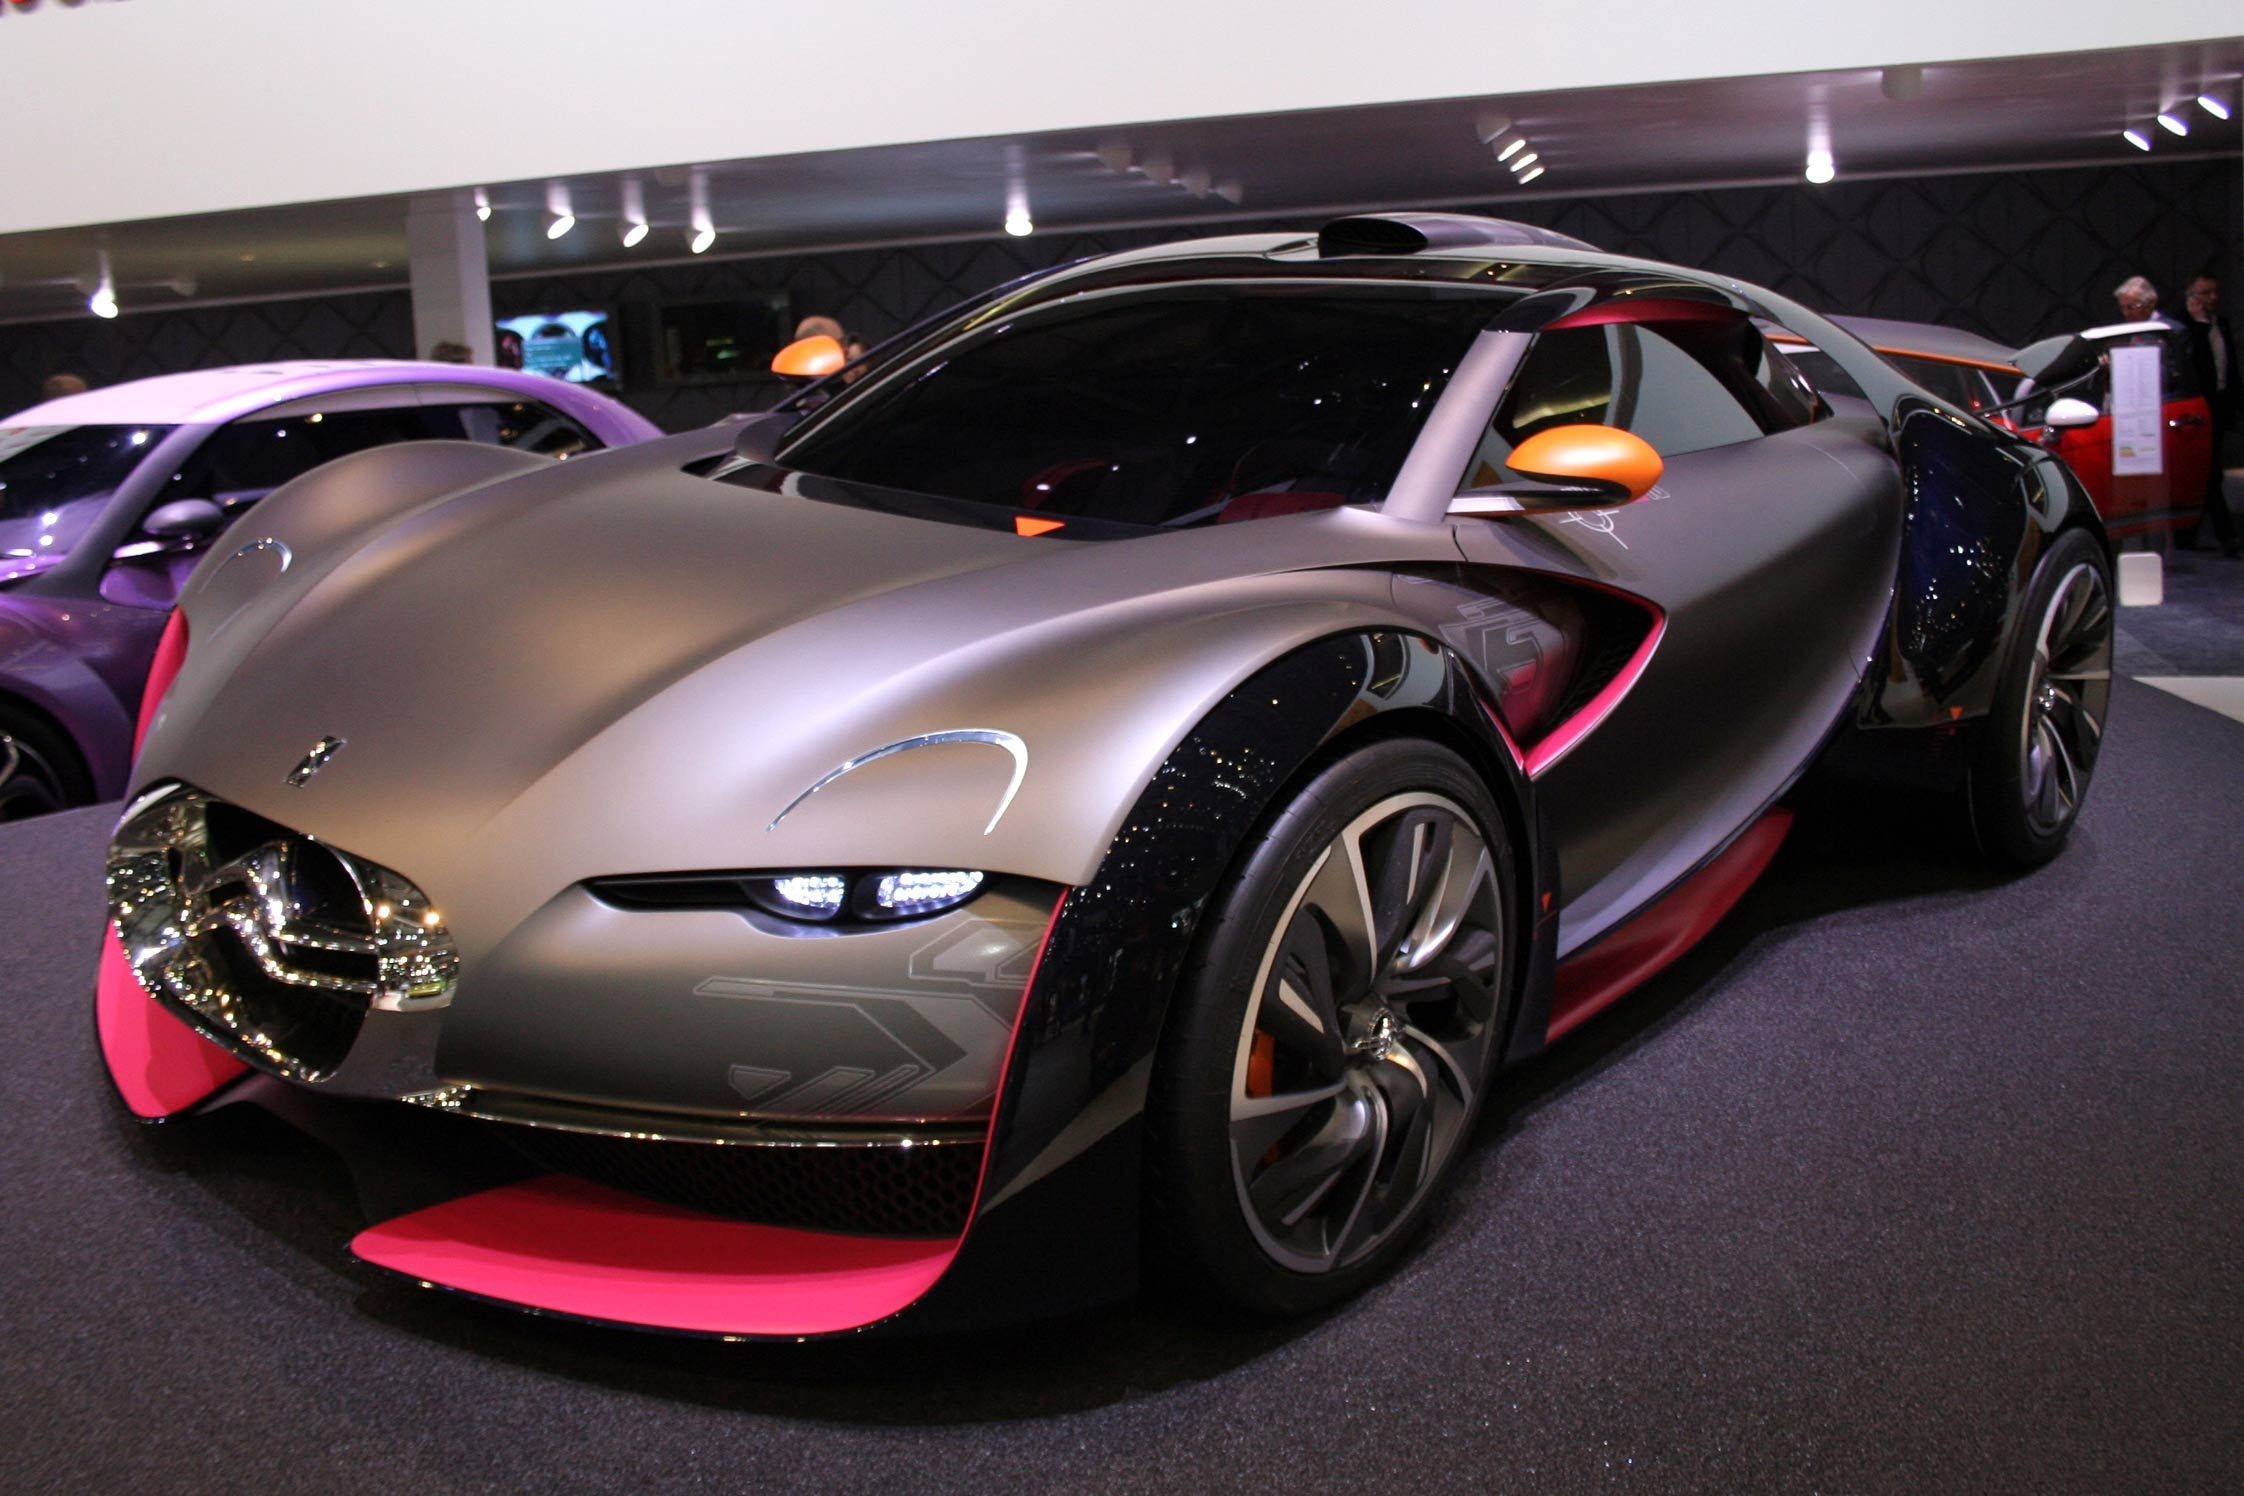 Sports Cars Wallpapers Vehicles Hq Sports Cars Pictures 4k Wallpapers 2019